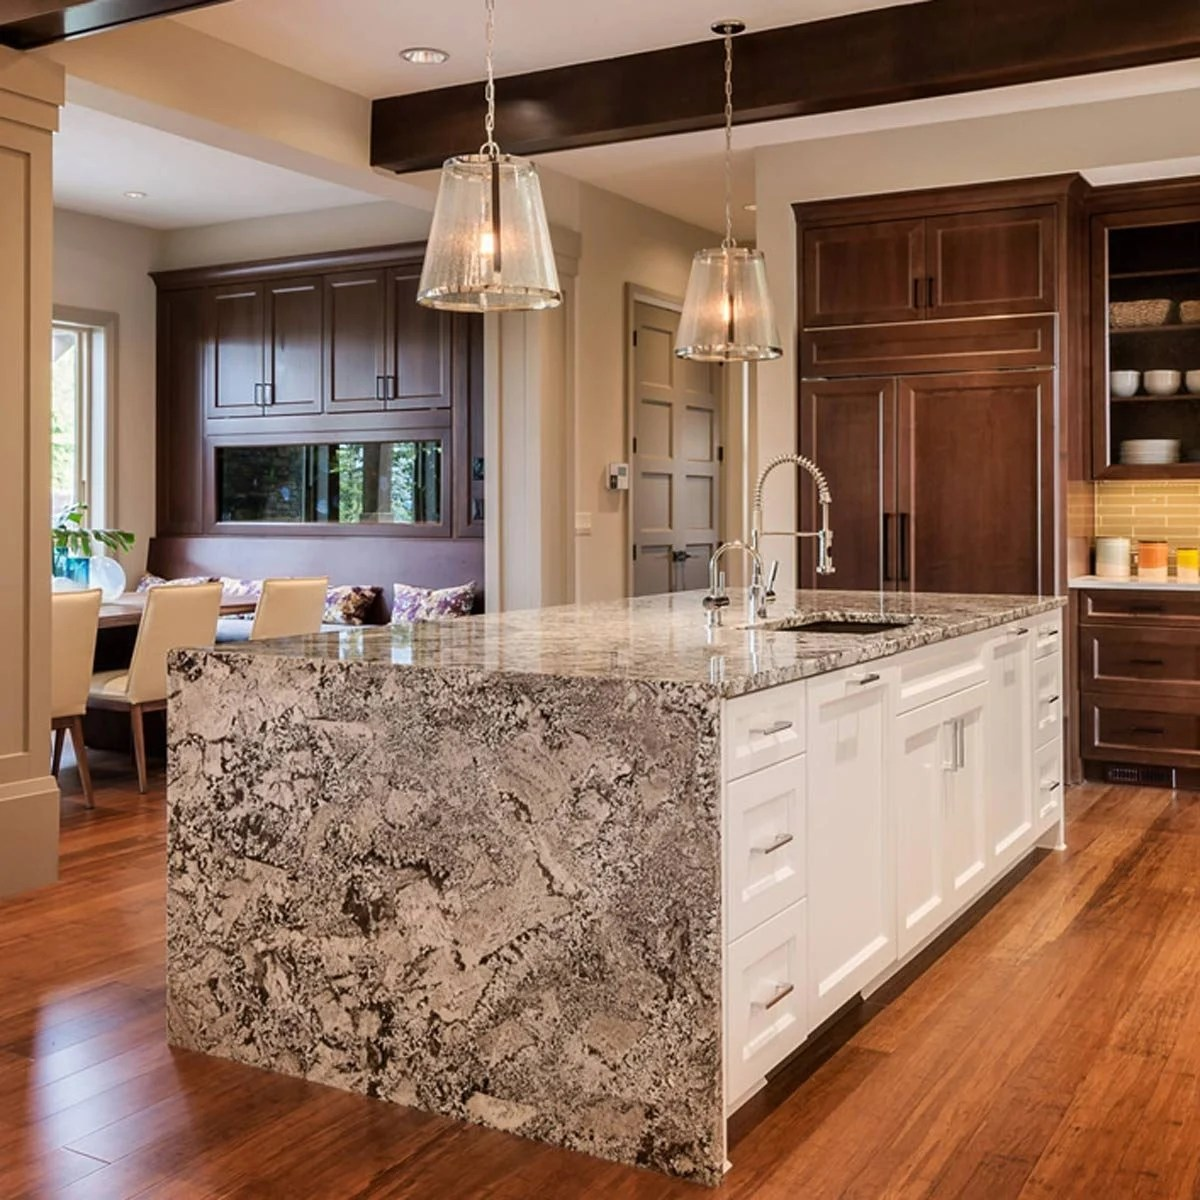 10 Kitchen Countertop Ideas People Are Doing Right Now   The Family Handyman